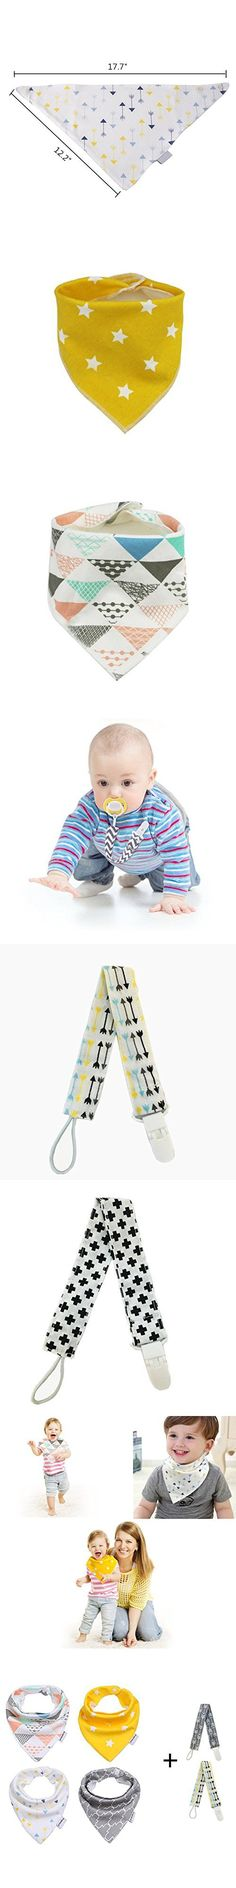 Ahyuan Baby Bandana Bib Unisex 4-Pack Cotton Drool Bibs with 2 Extra Cotton Pacifier Clips Cute Baby Shower Gift Sets for Boys & Girls